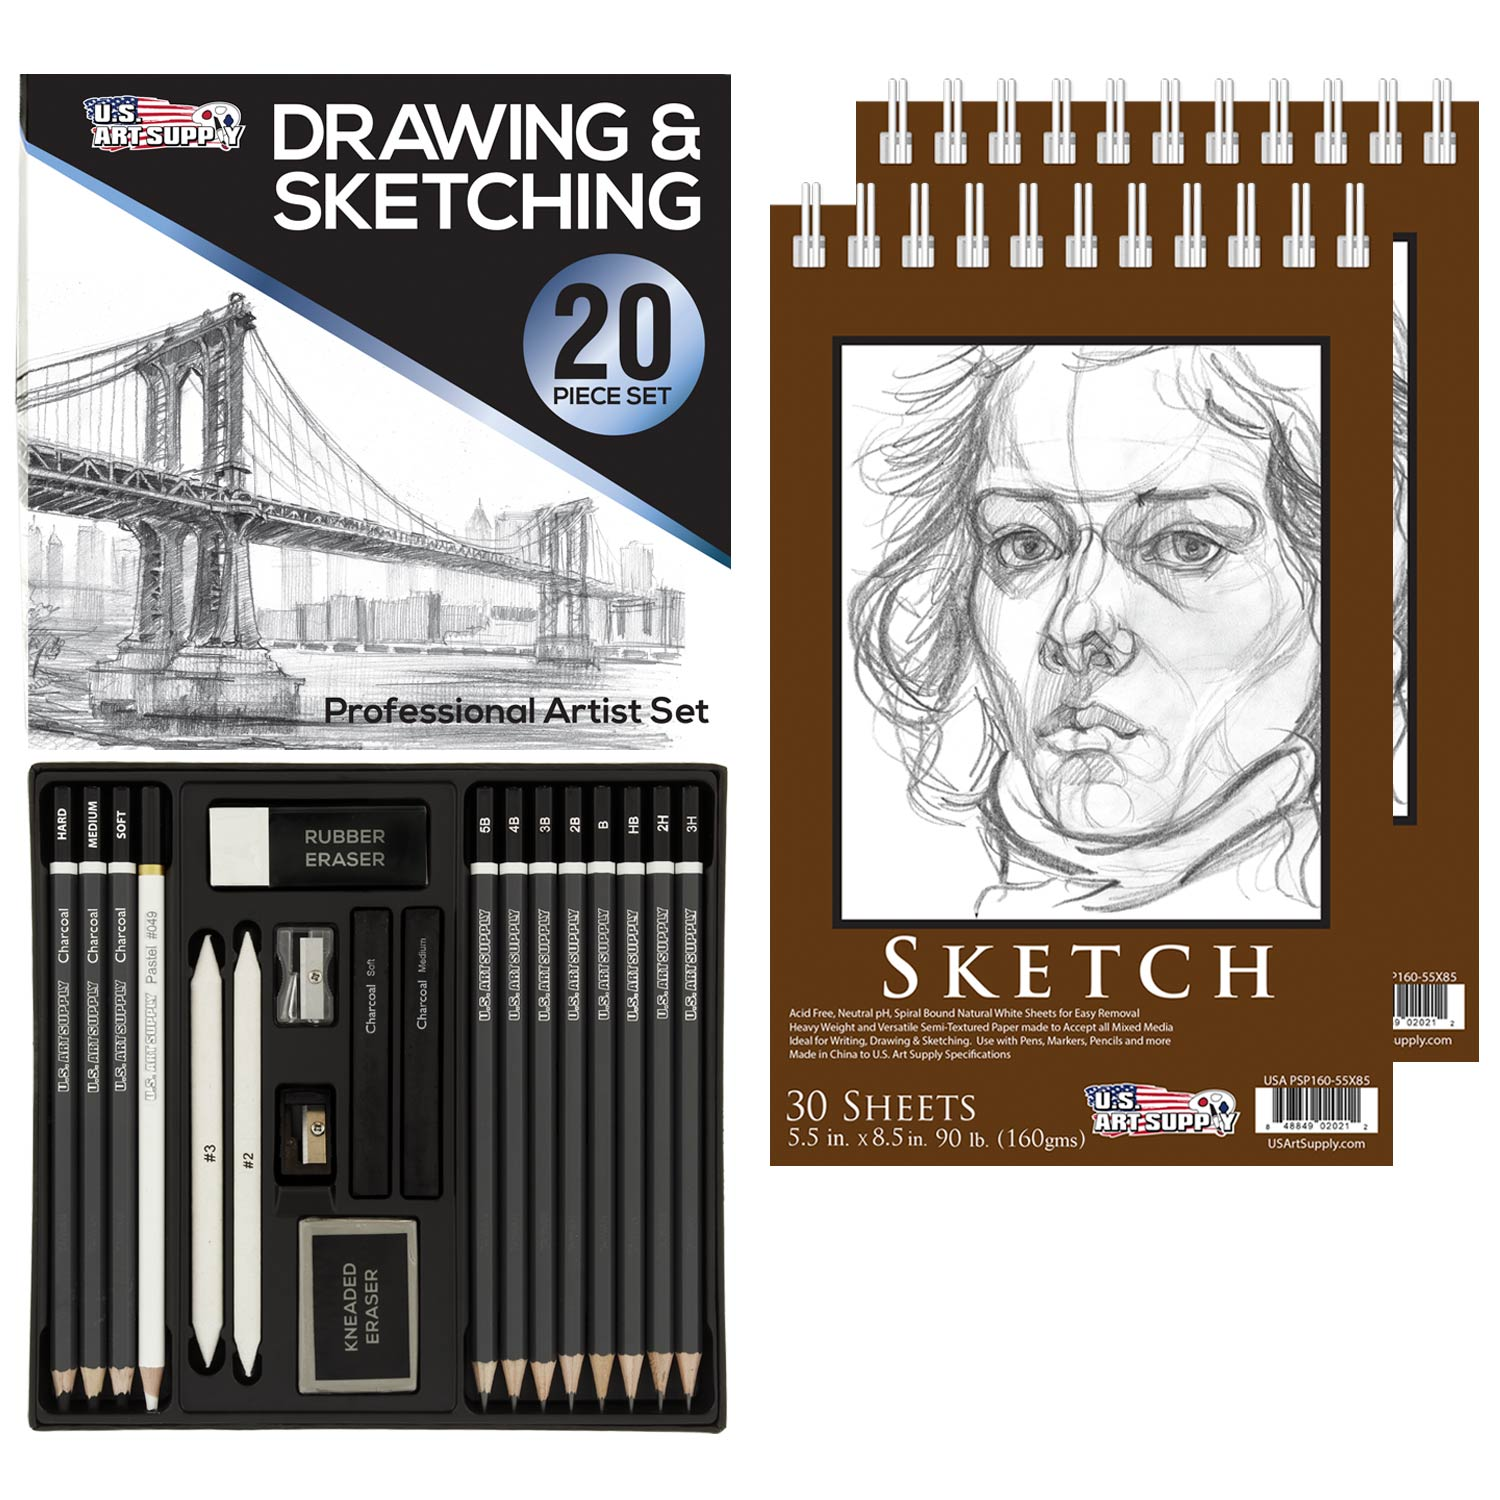 Details About 20 Piece Artist Drawing Sketching Set With Pack Of 2 5 5 X 8 5 Sketch Pads